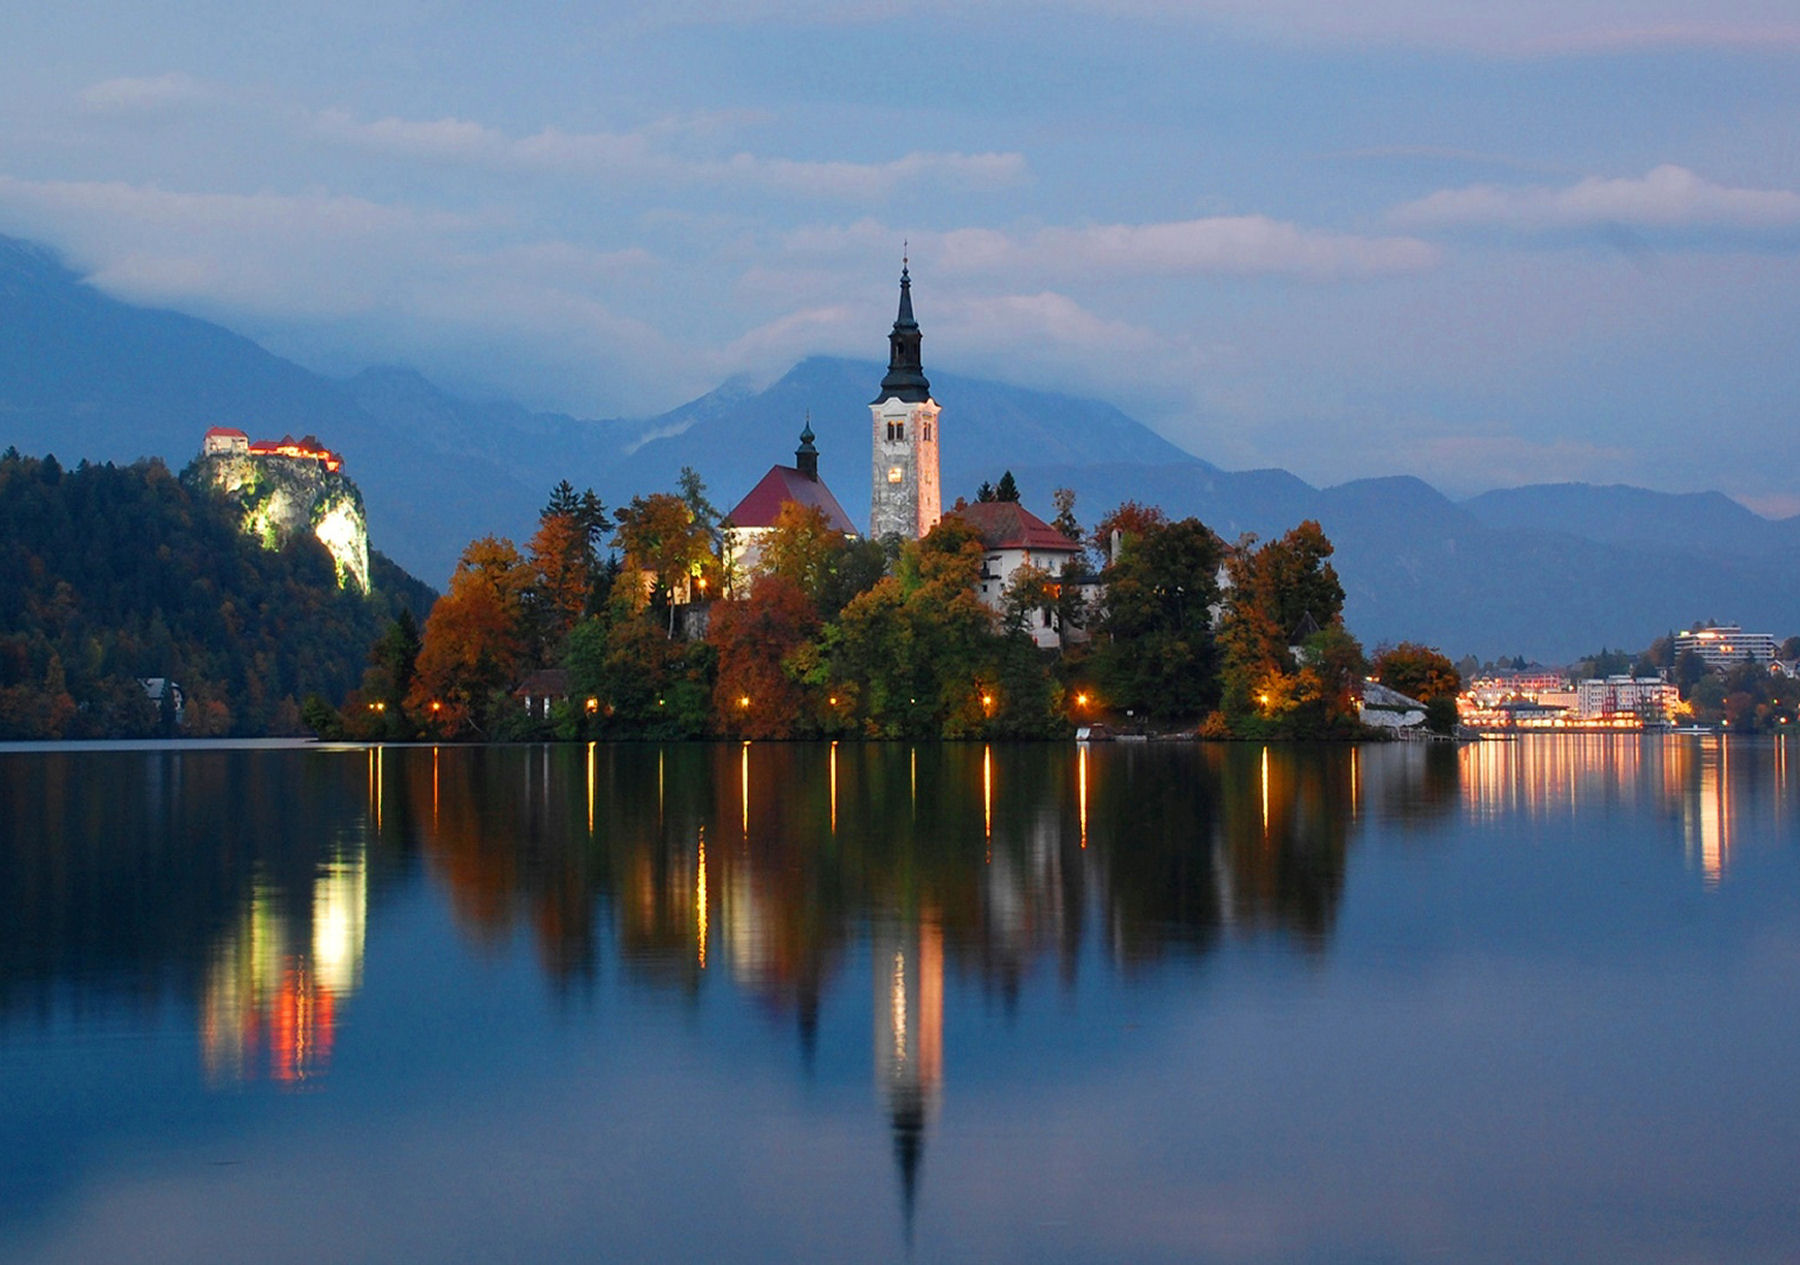 Lake Bled, Slovenia, taken from western end of lake at twilight